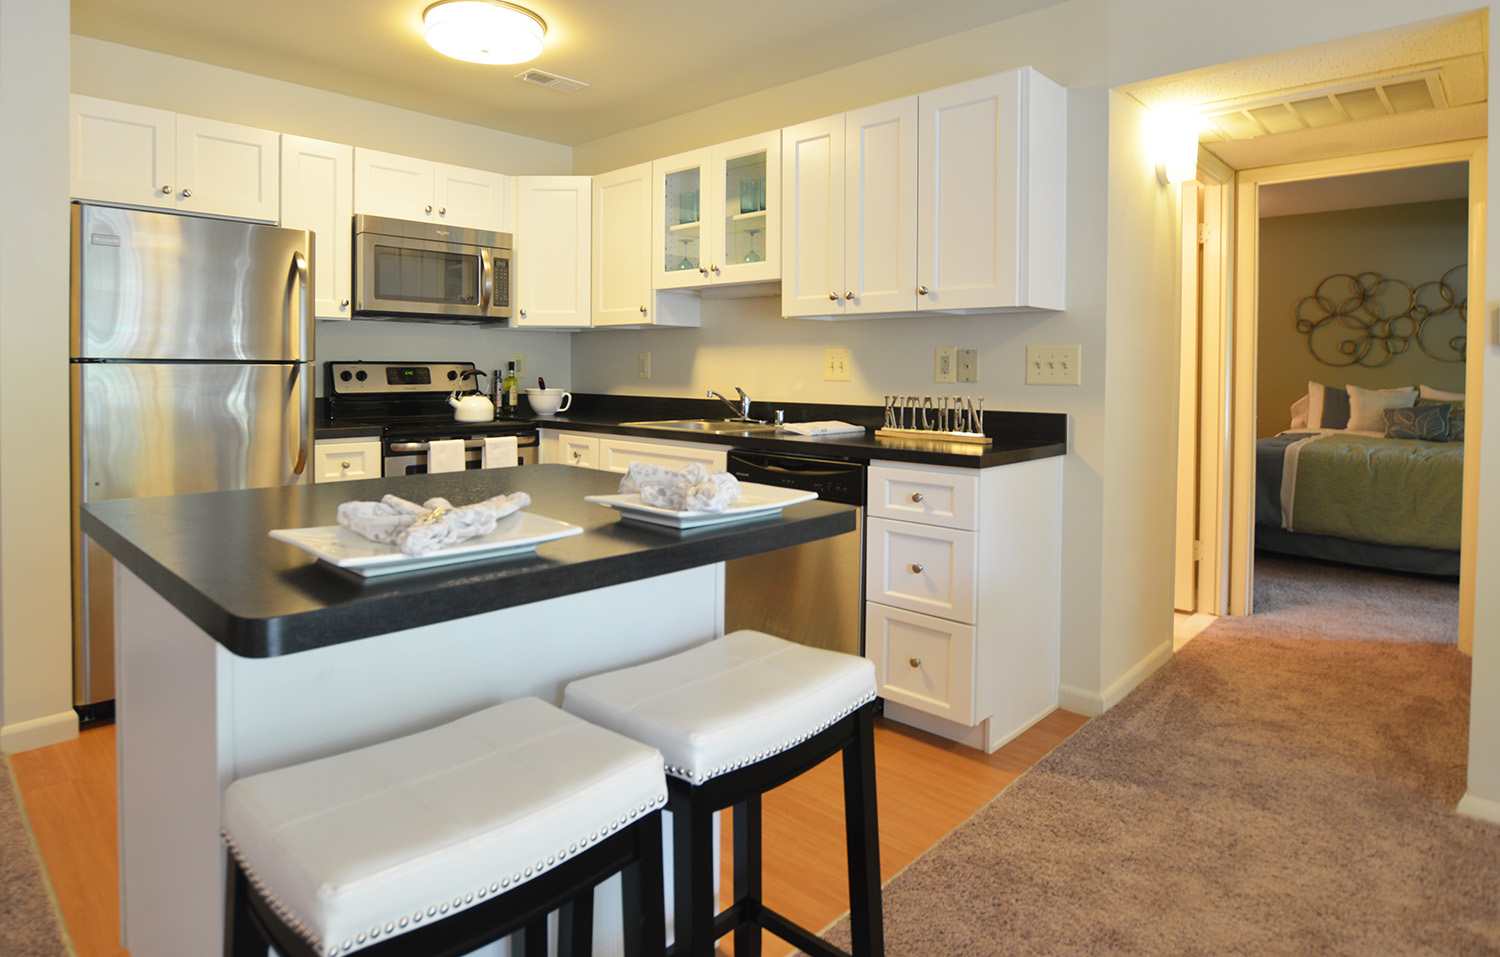 Our apartments in Cockeysville are beautifully renovated